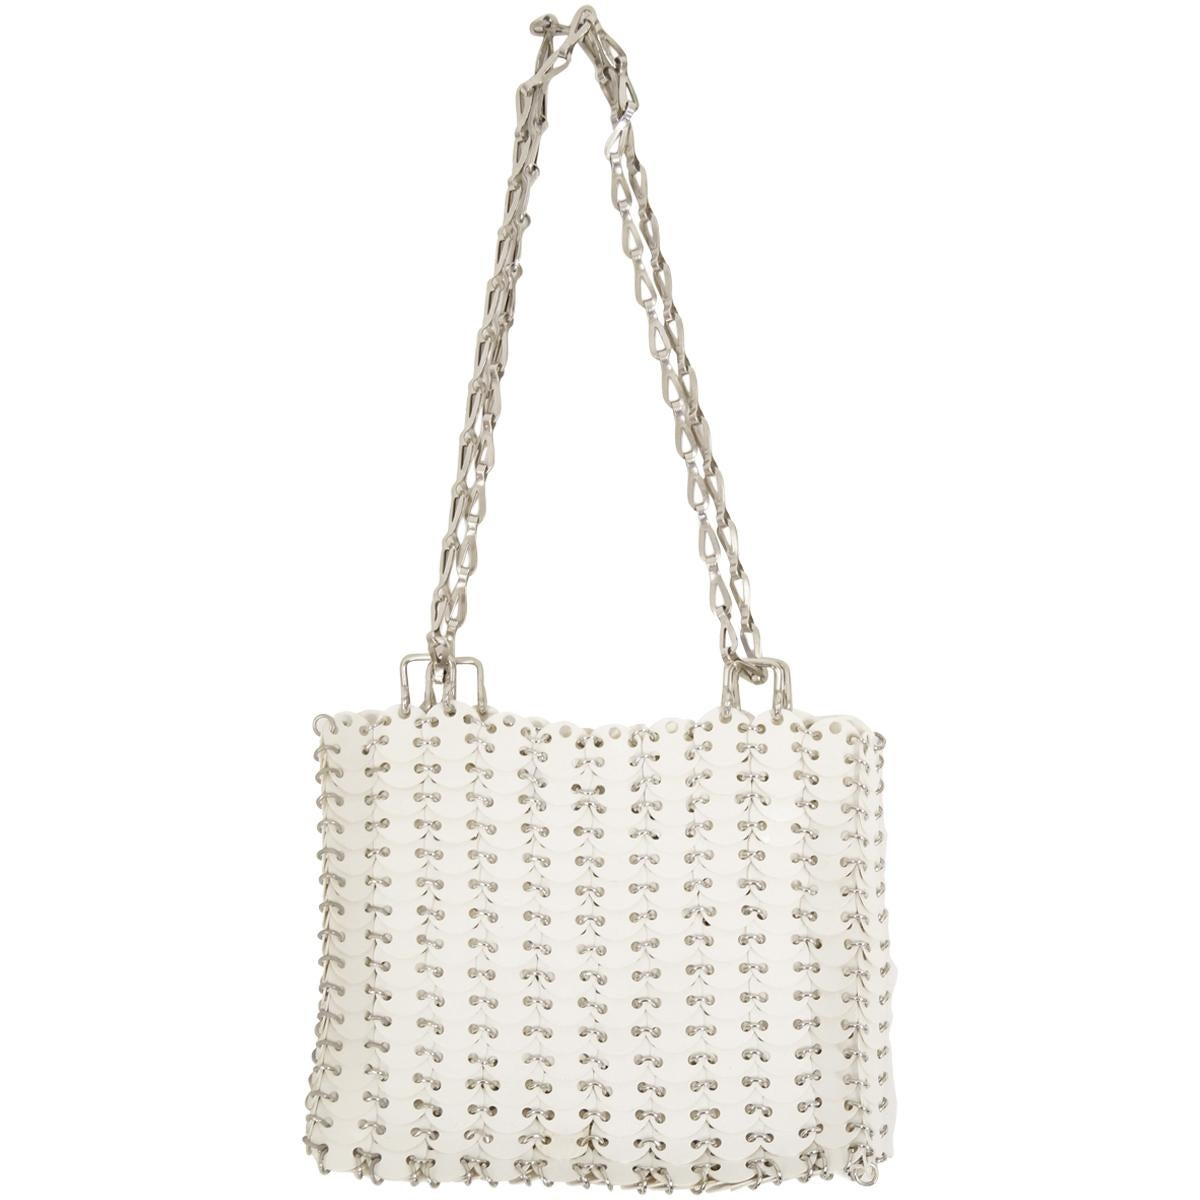 Paco Rabanne le 69 Bag Reissue In Antique Silver Medallions z3Sbfv0